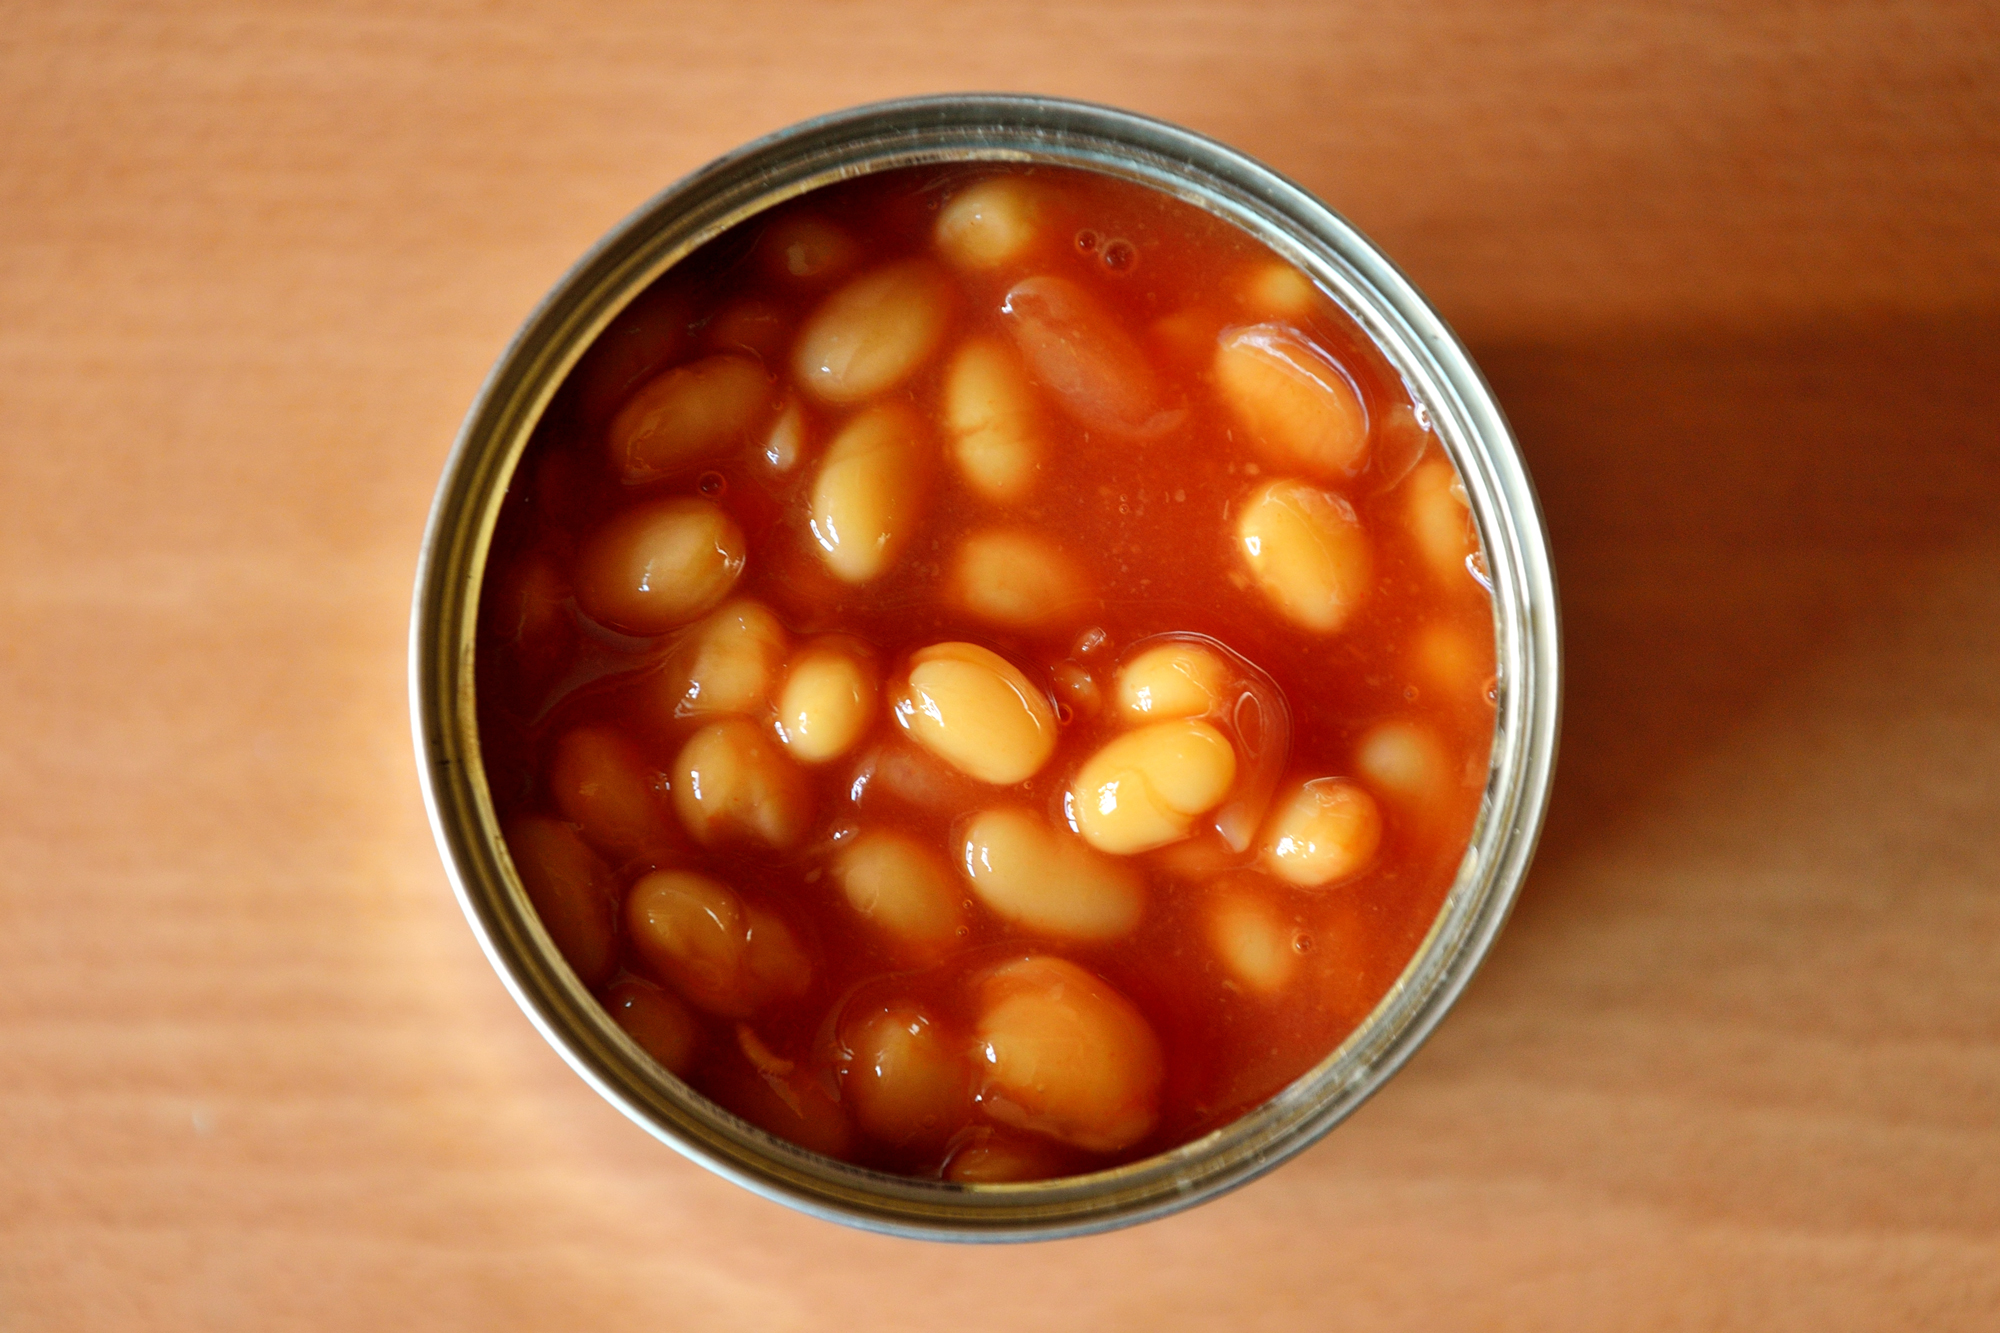 overhead image of open can of baked beans